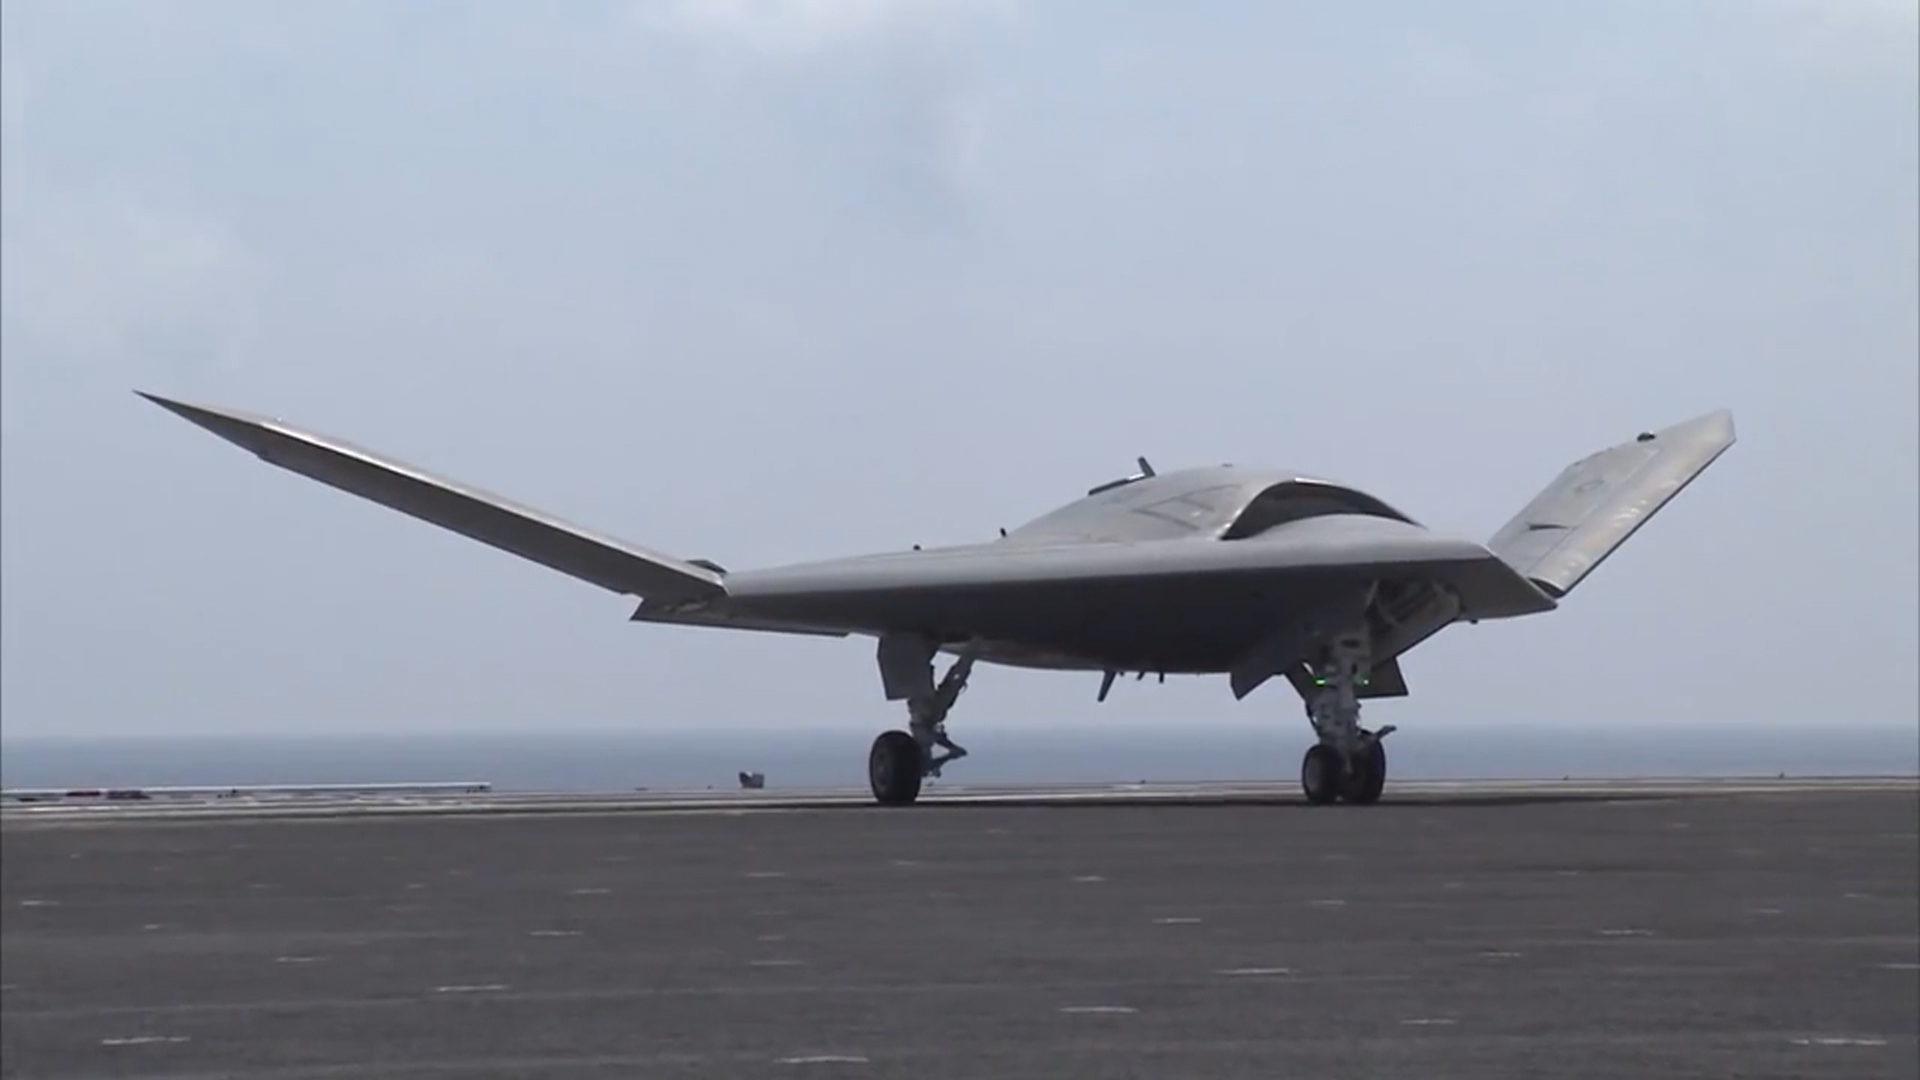 Navy's Massive Triton Spy Drone Completes Cross-Country Flight